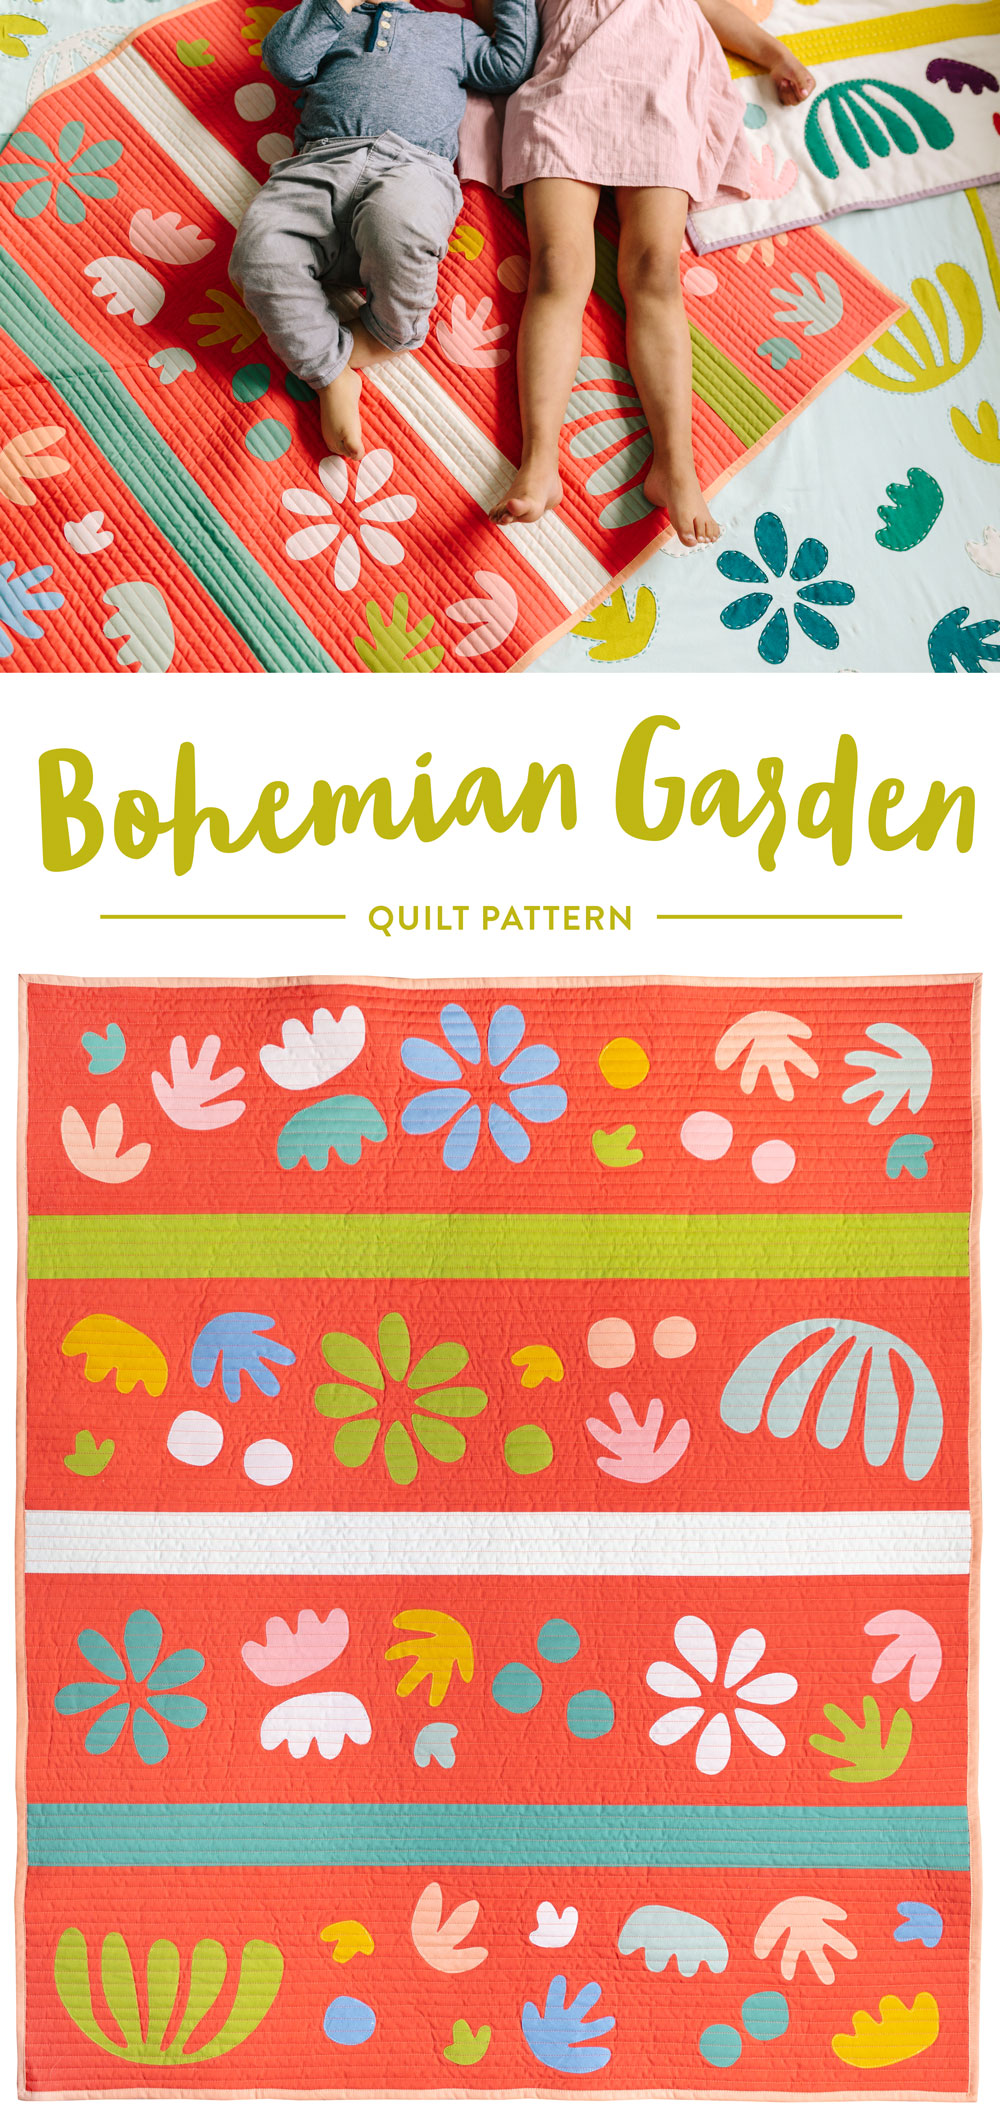 Get the Bohemian Garden quilt pattern – includes instructions for raw-edge applique. | Suzy Quilts https://suzyquilts.com/the-bohemian-garden-quilt-pattern